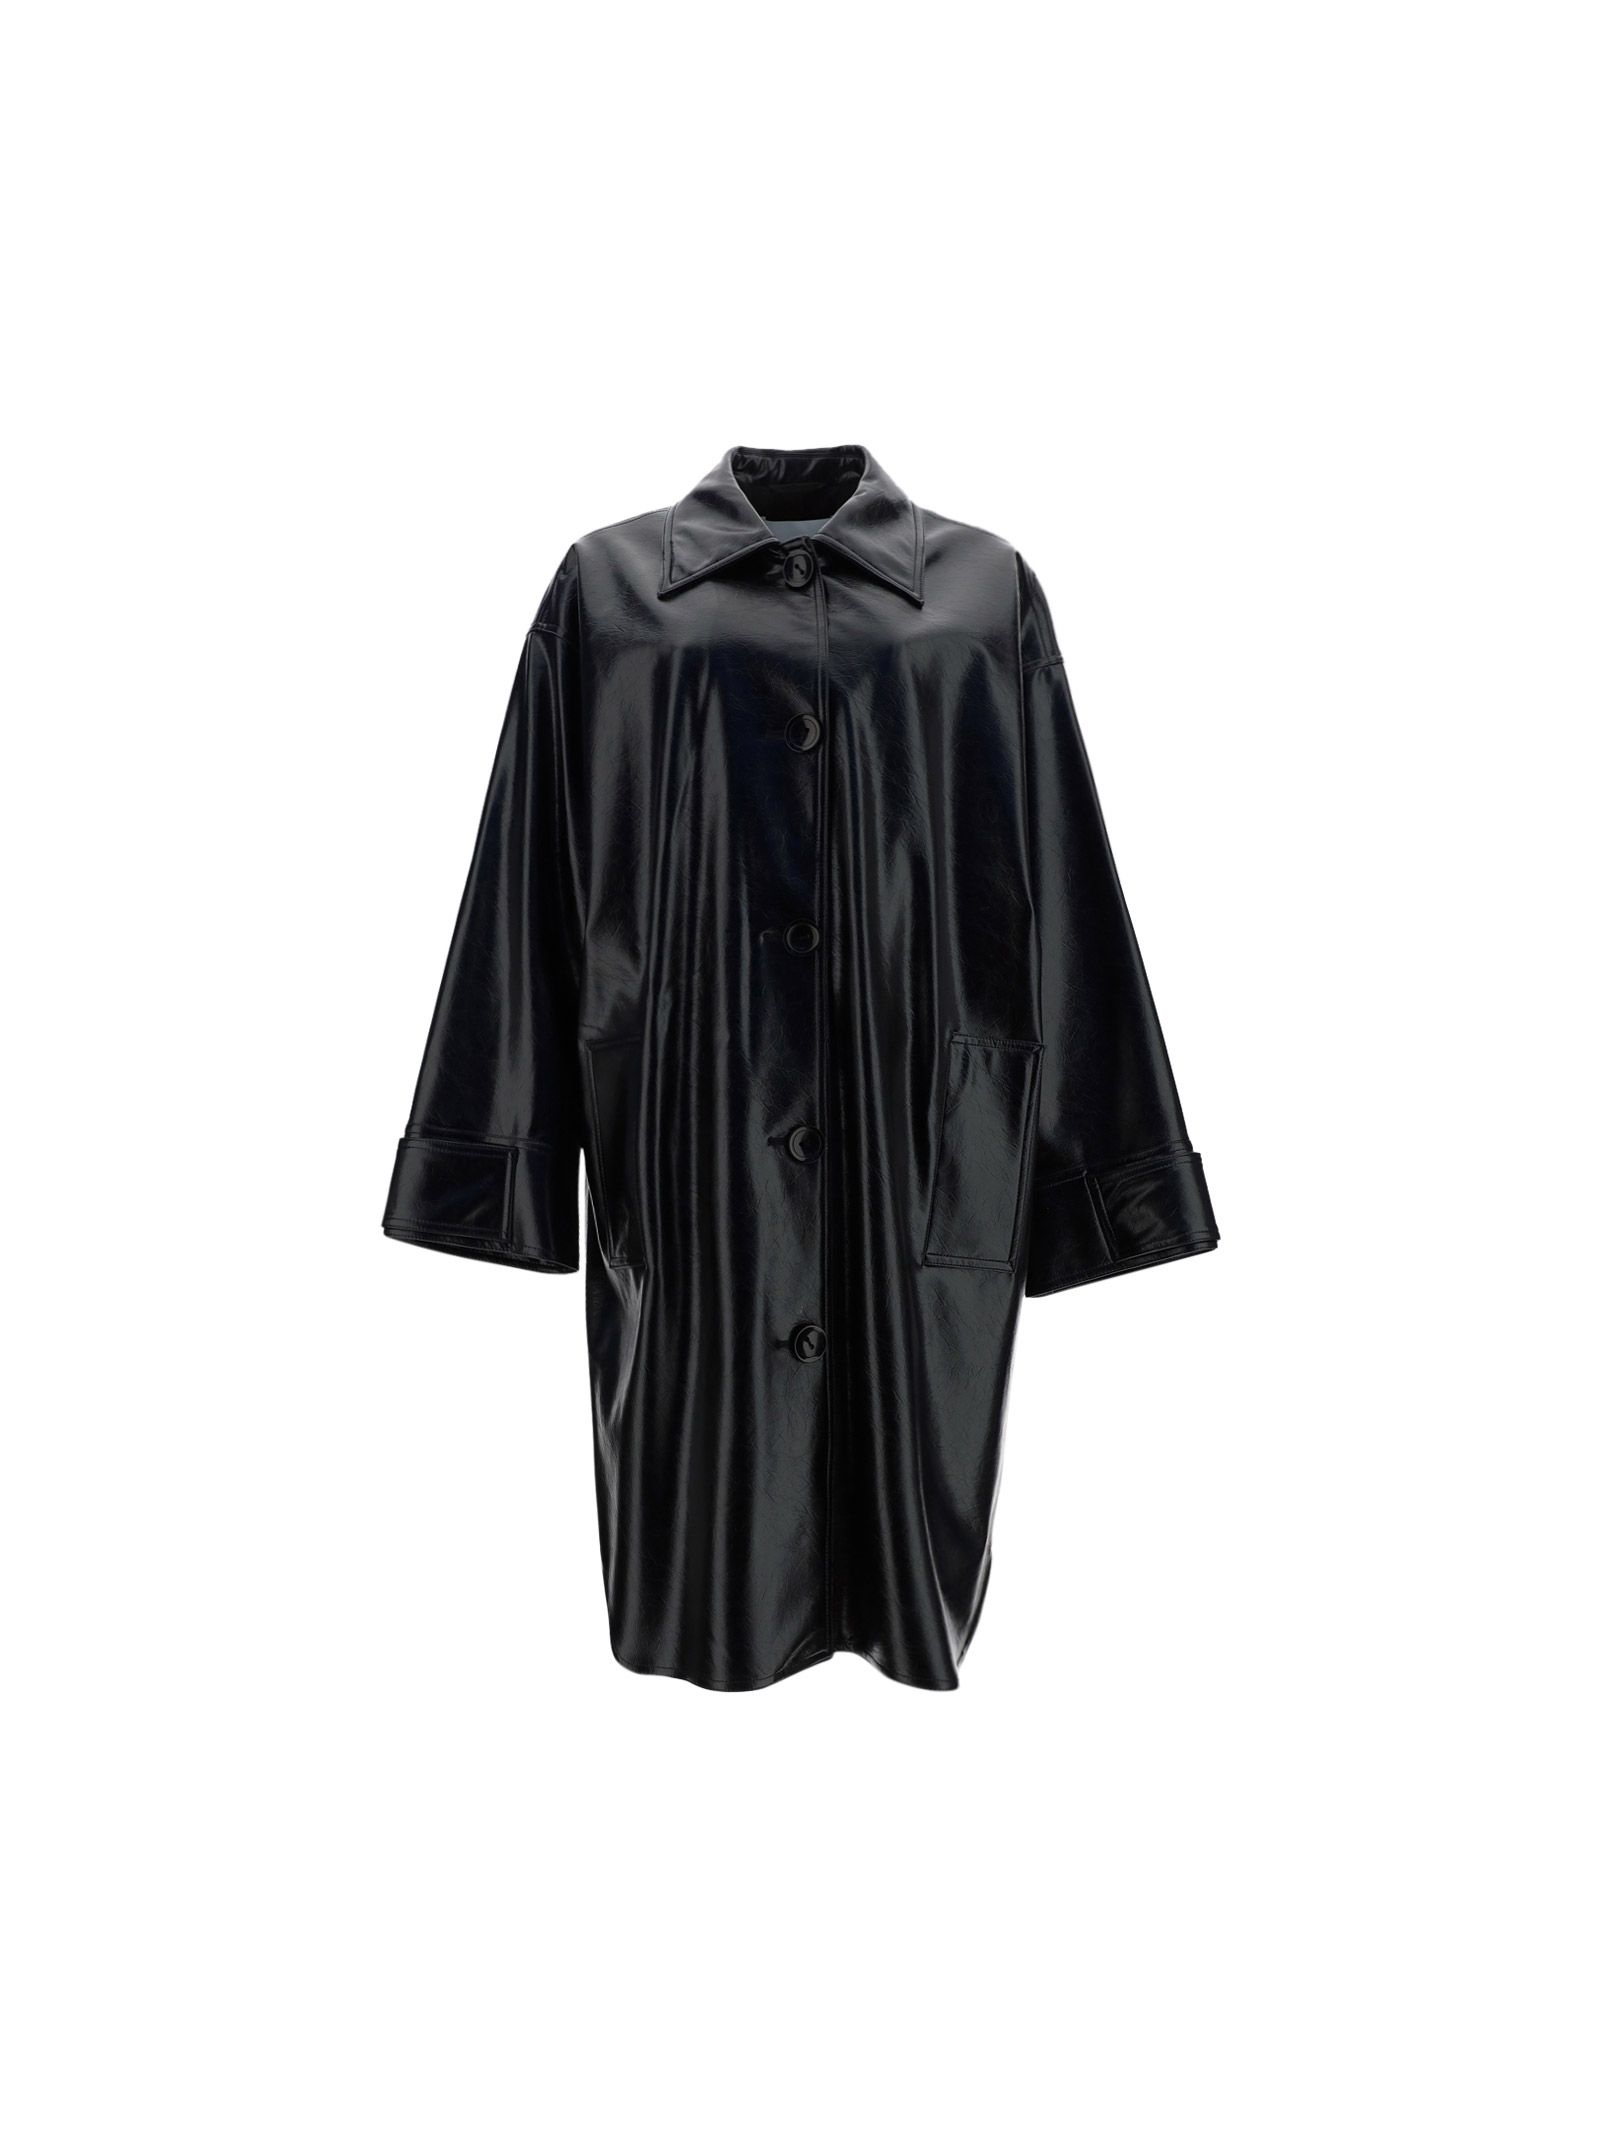 Stand Studio STAND WOMEN'S BLACK OTHER MATERIALS COAT